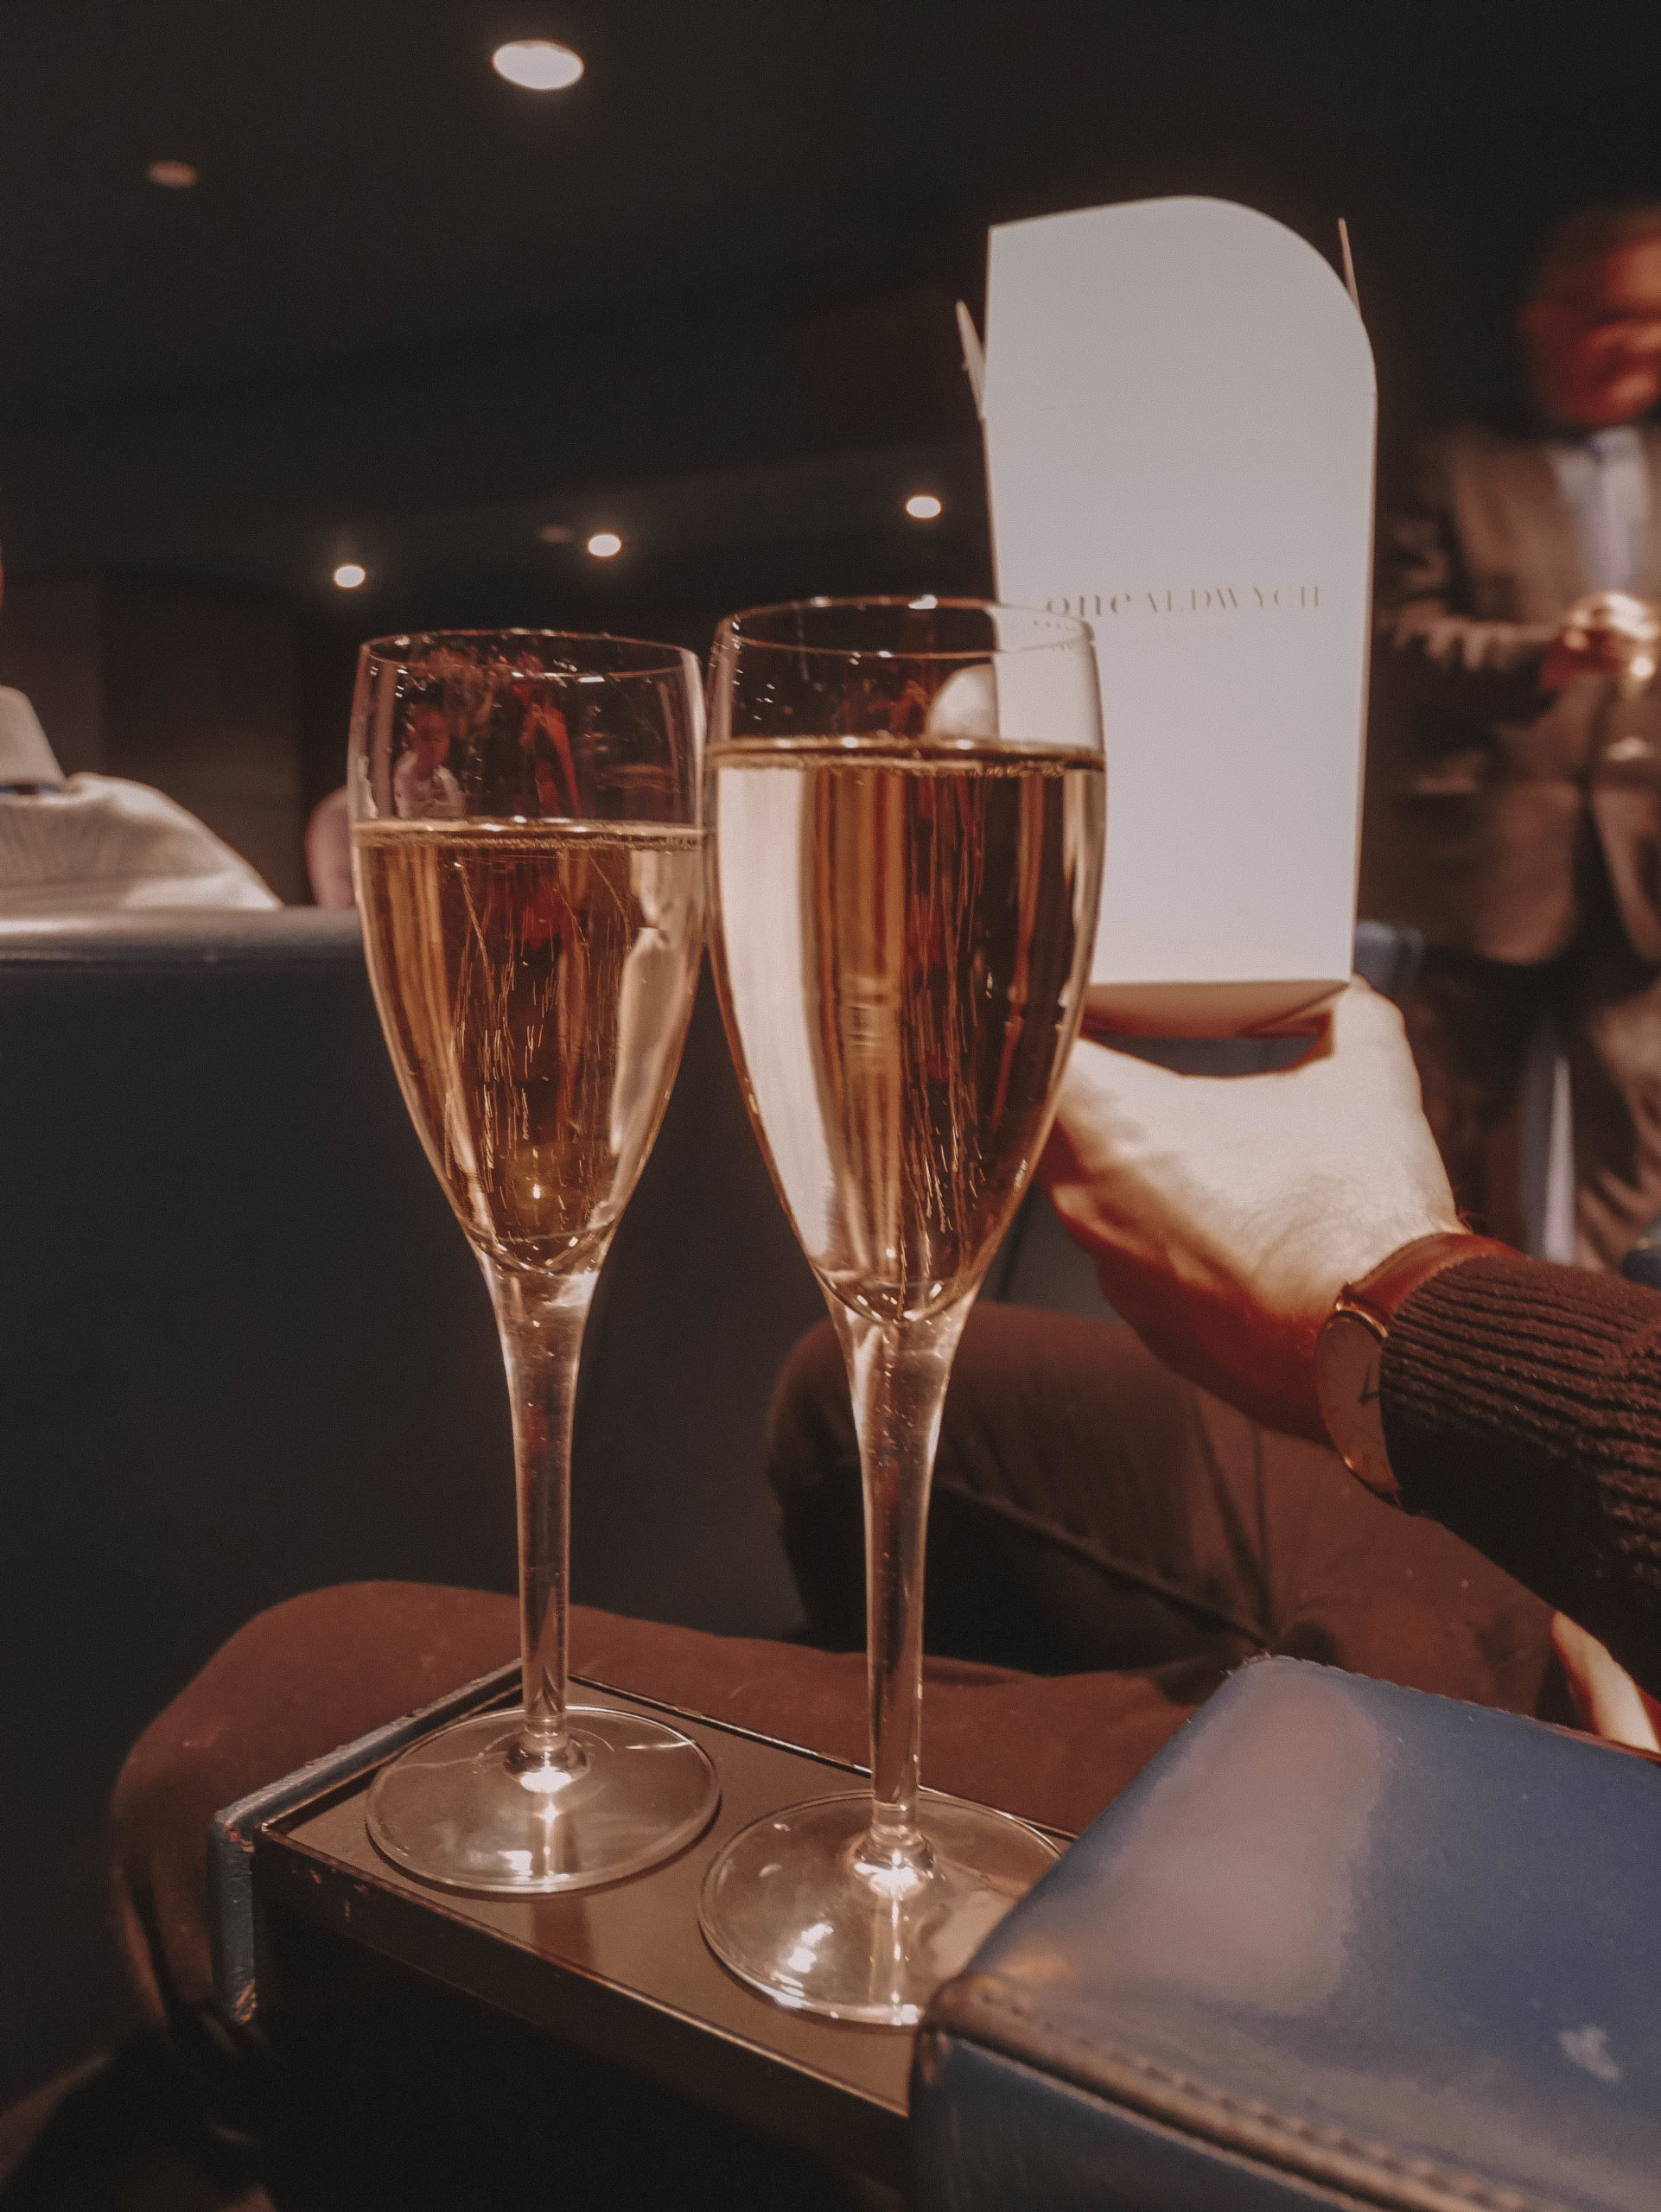 THE PERFECT LONDON VALENTINES DATE NIGHT